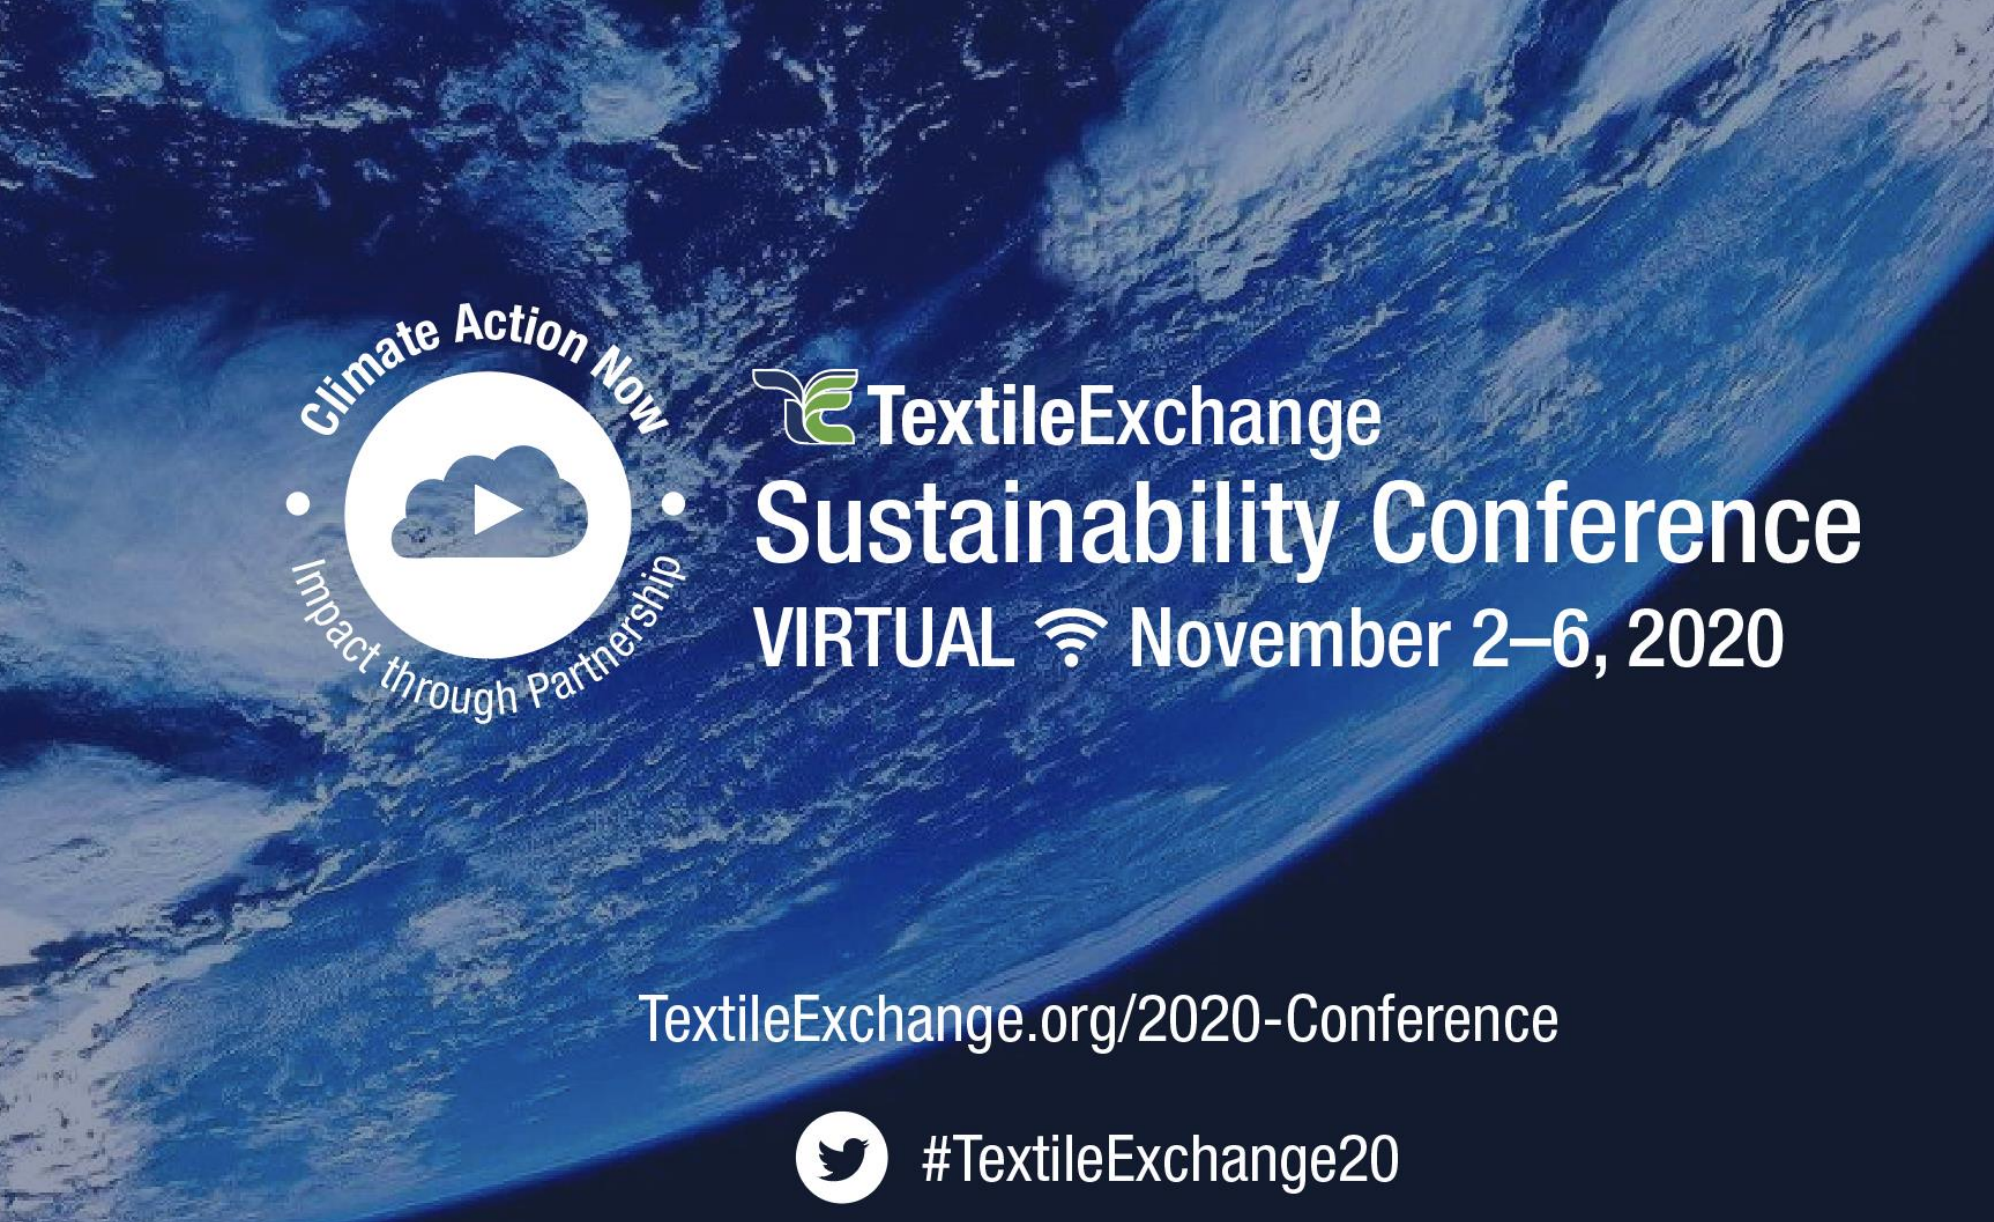 What to expect at the 2020 Sustainability Conference